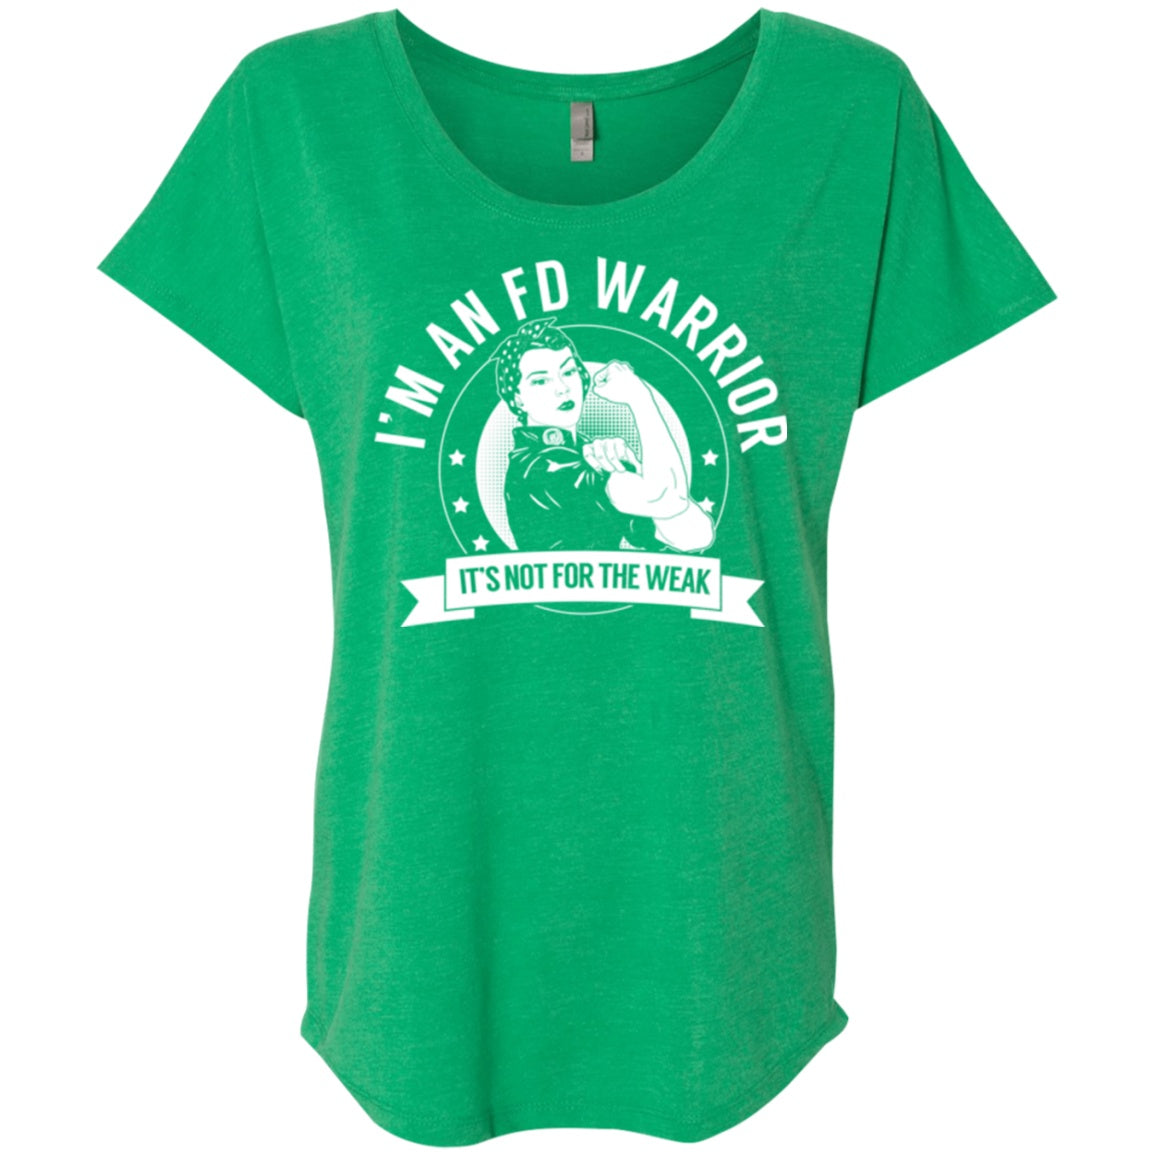 Fibrous Dysplasia - FD Warrior Not For The Weak Dolman Sleeve - The Unchargeables